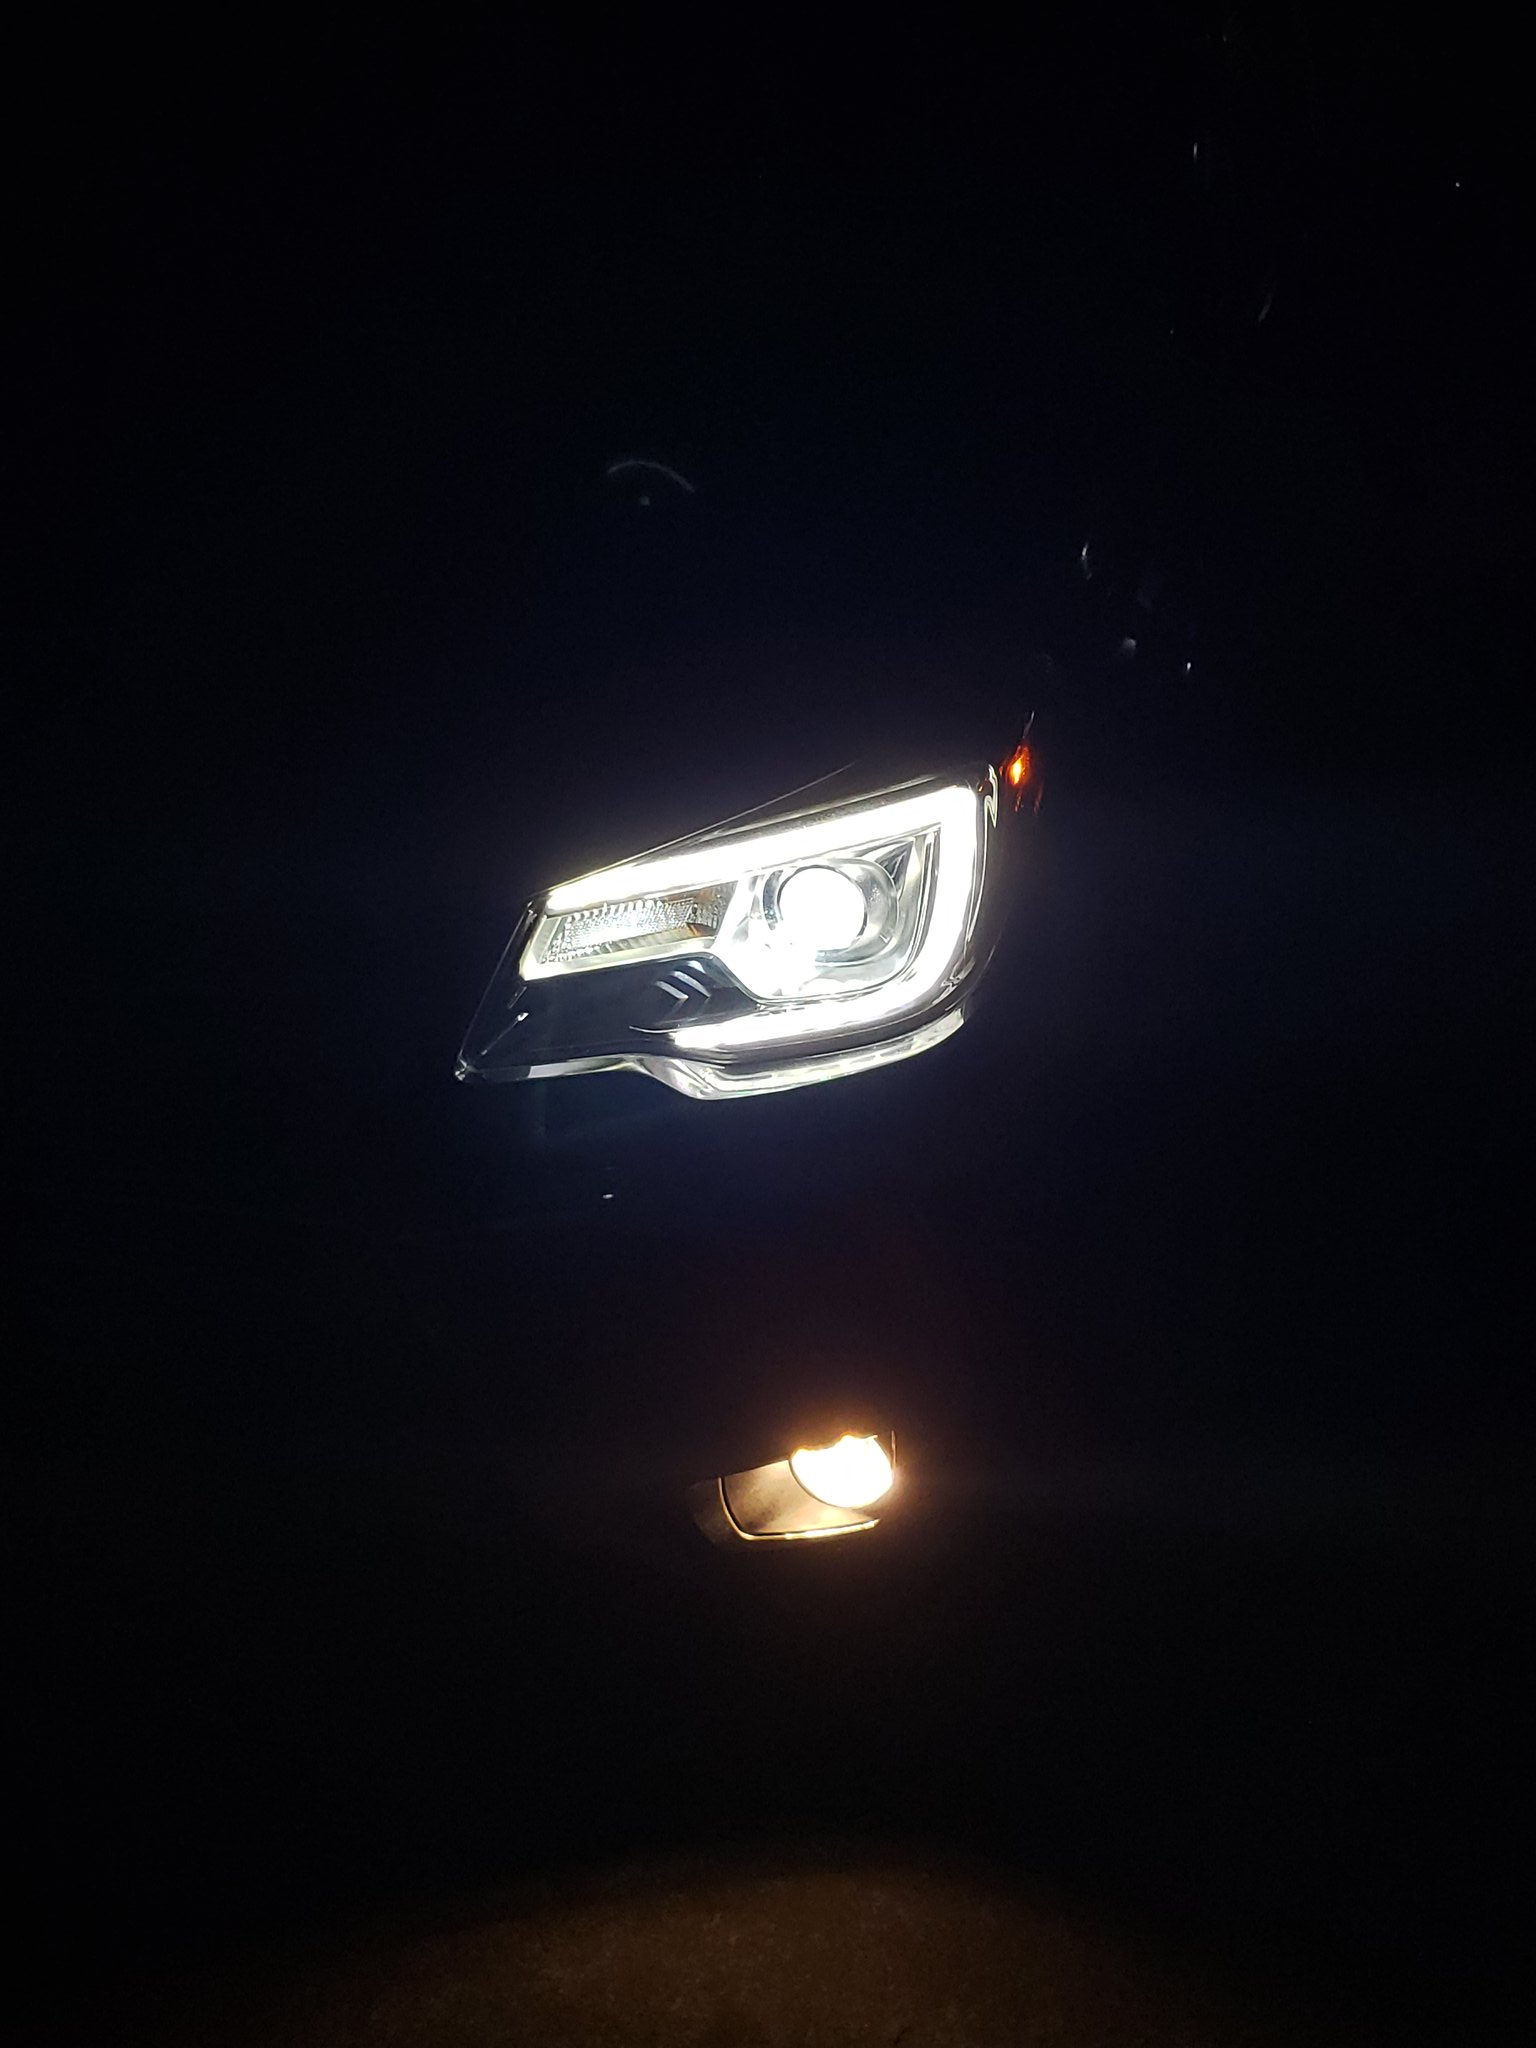 14-'18) - 17 OEM LED headlights from a touring / black into